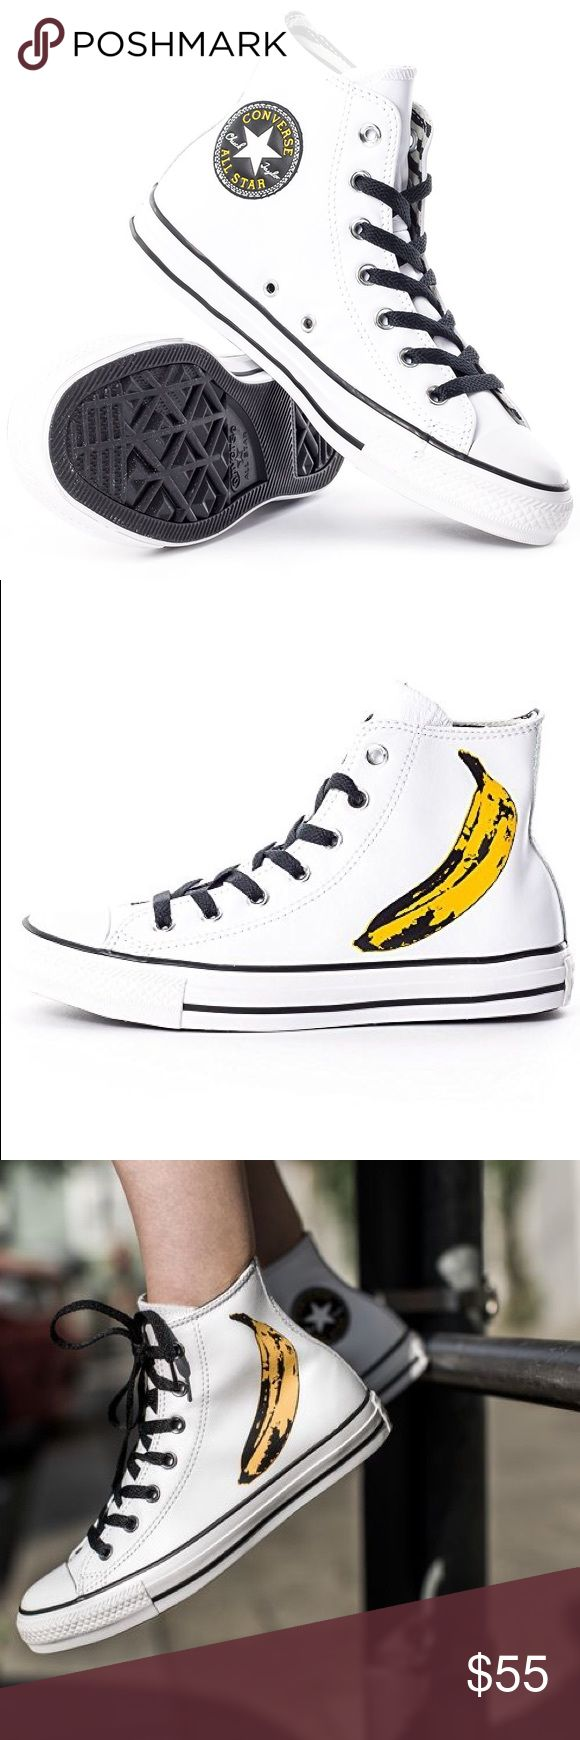 🌴☀️SALE! Converse white Andy Warhol womens size 7 Brand new without box Converse Shoes Sneakers